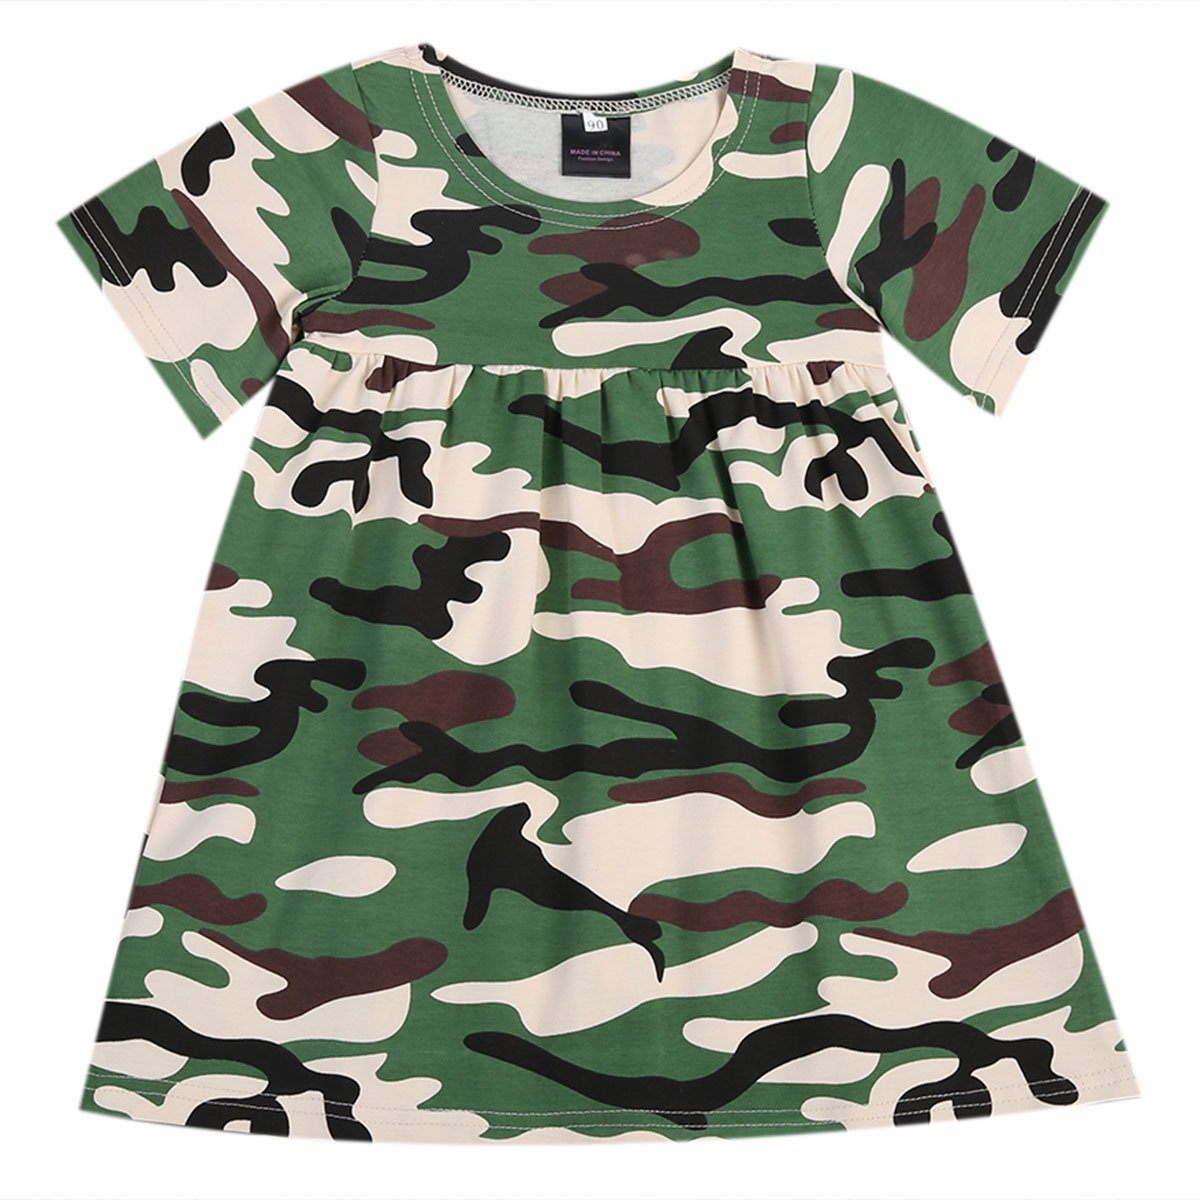 Toddler Baby Girl Kids Summer Camouflage Short Sleeve Casual Cotton Tutu Dress